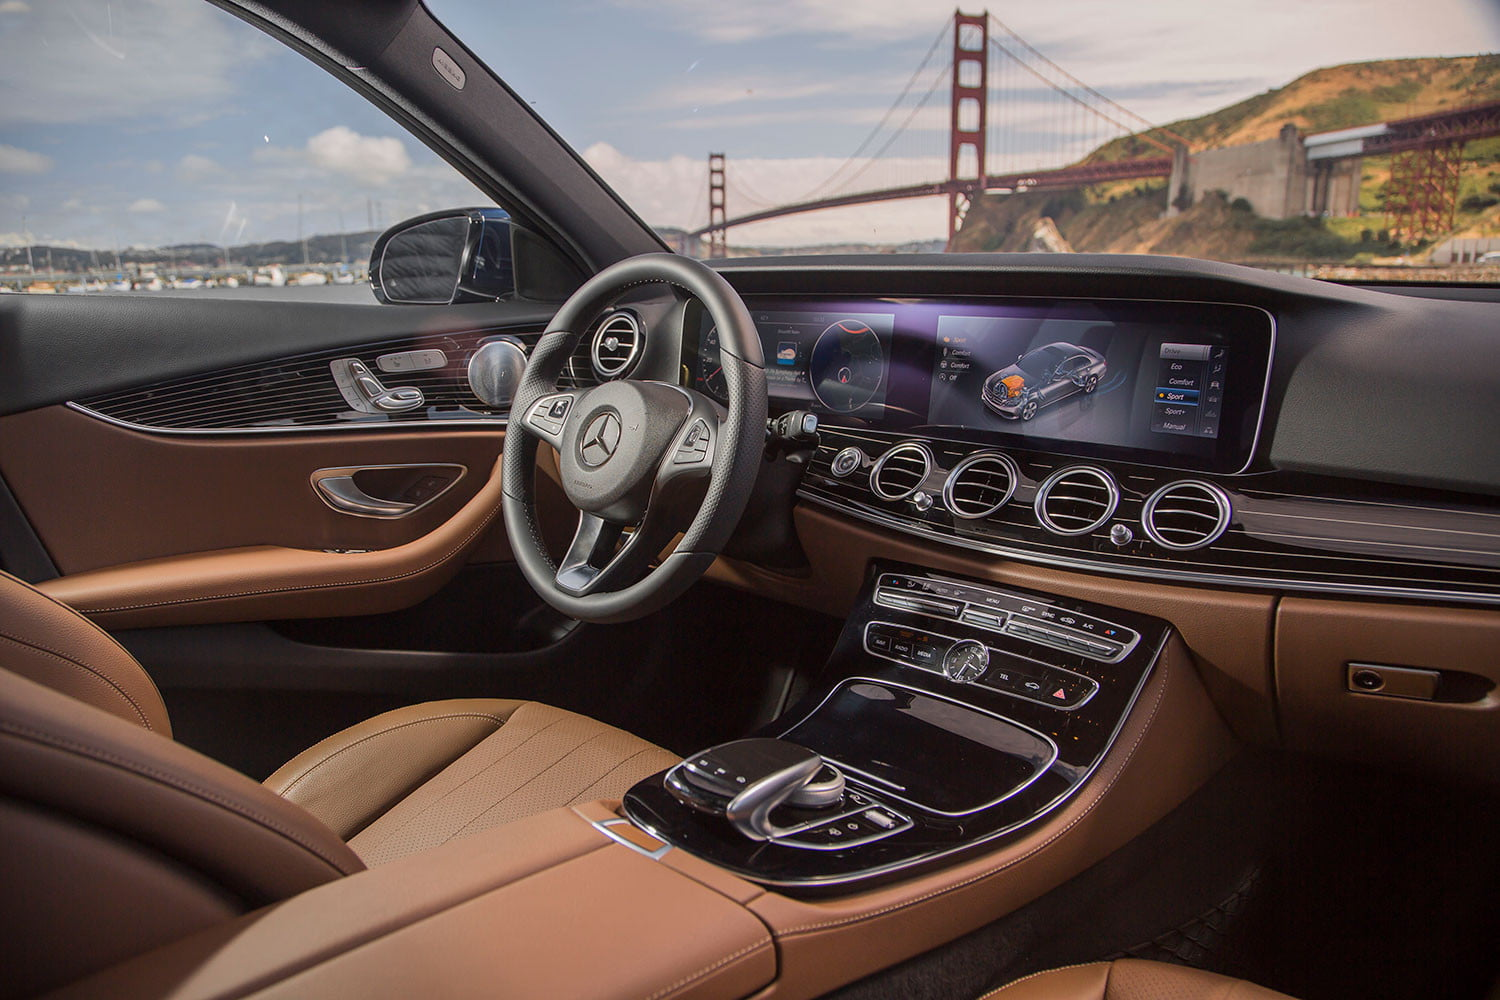 2017 mercedes benz e300 first drive digital trends for 2017 mercedes benz e350 price